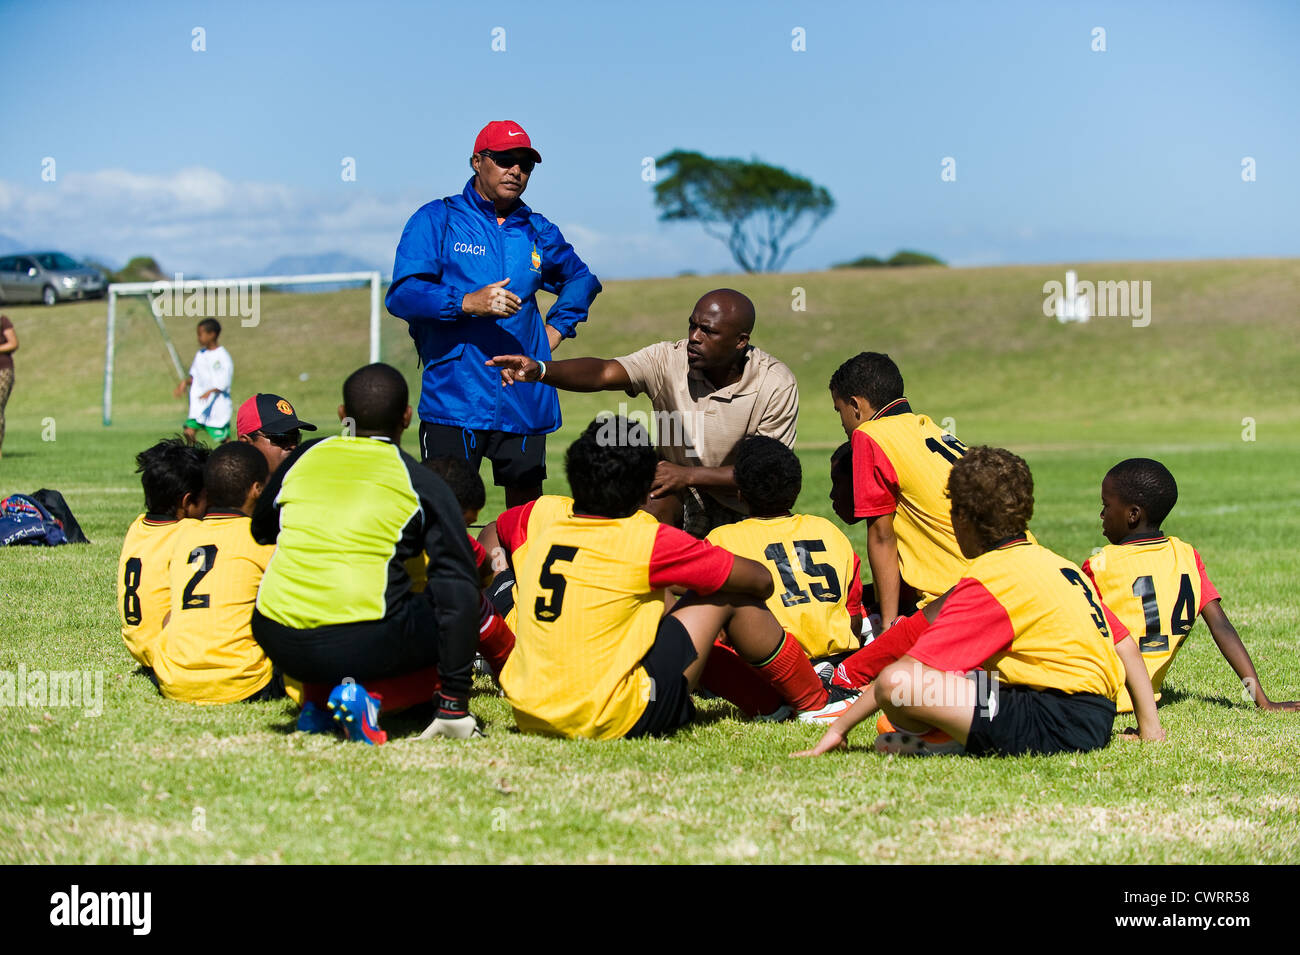 Football youth team at Strandfontain tournament, Cape Town, South Africa - Stock Image